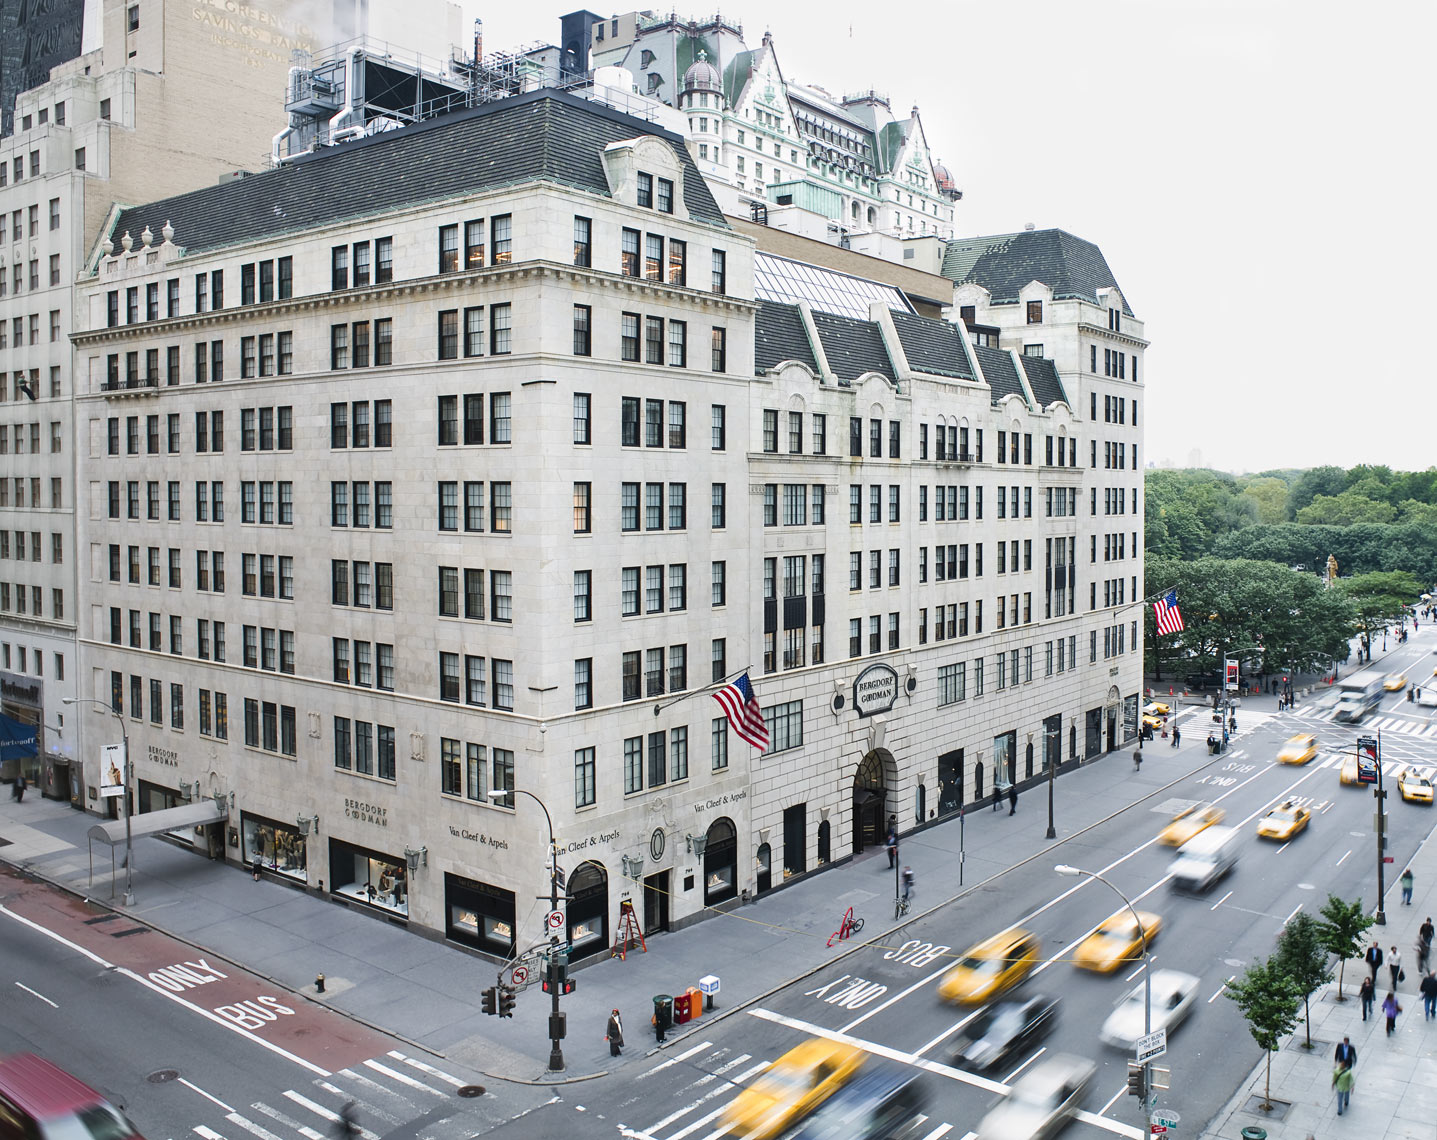 BERGDORF_GOODMAN-39-Edit-Edit_retouched_crop-copy.JPG